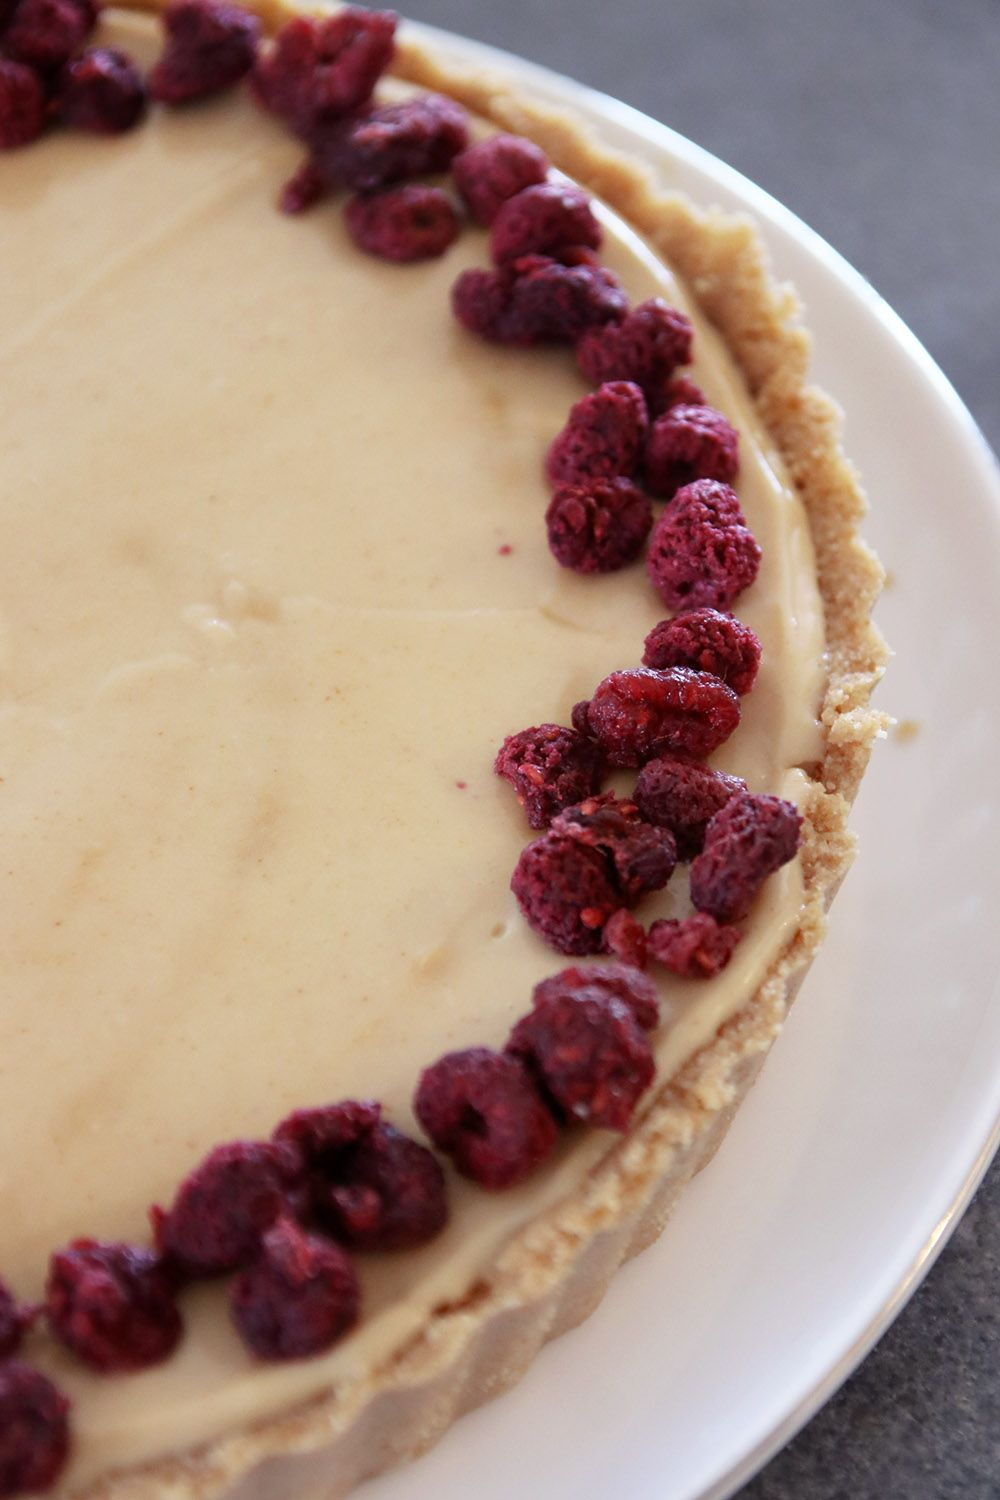 Vegan Peanut Butter and Jelly Tart